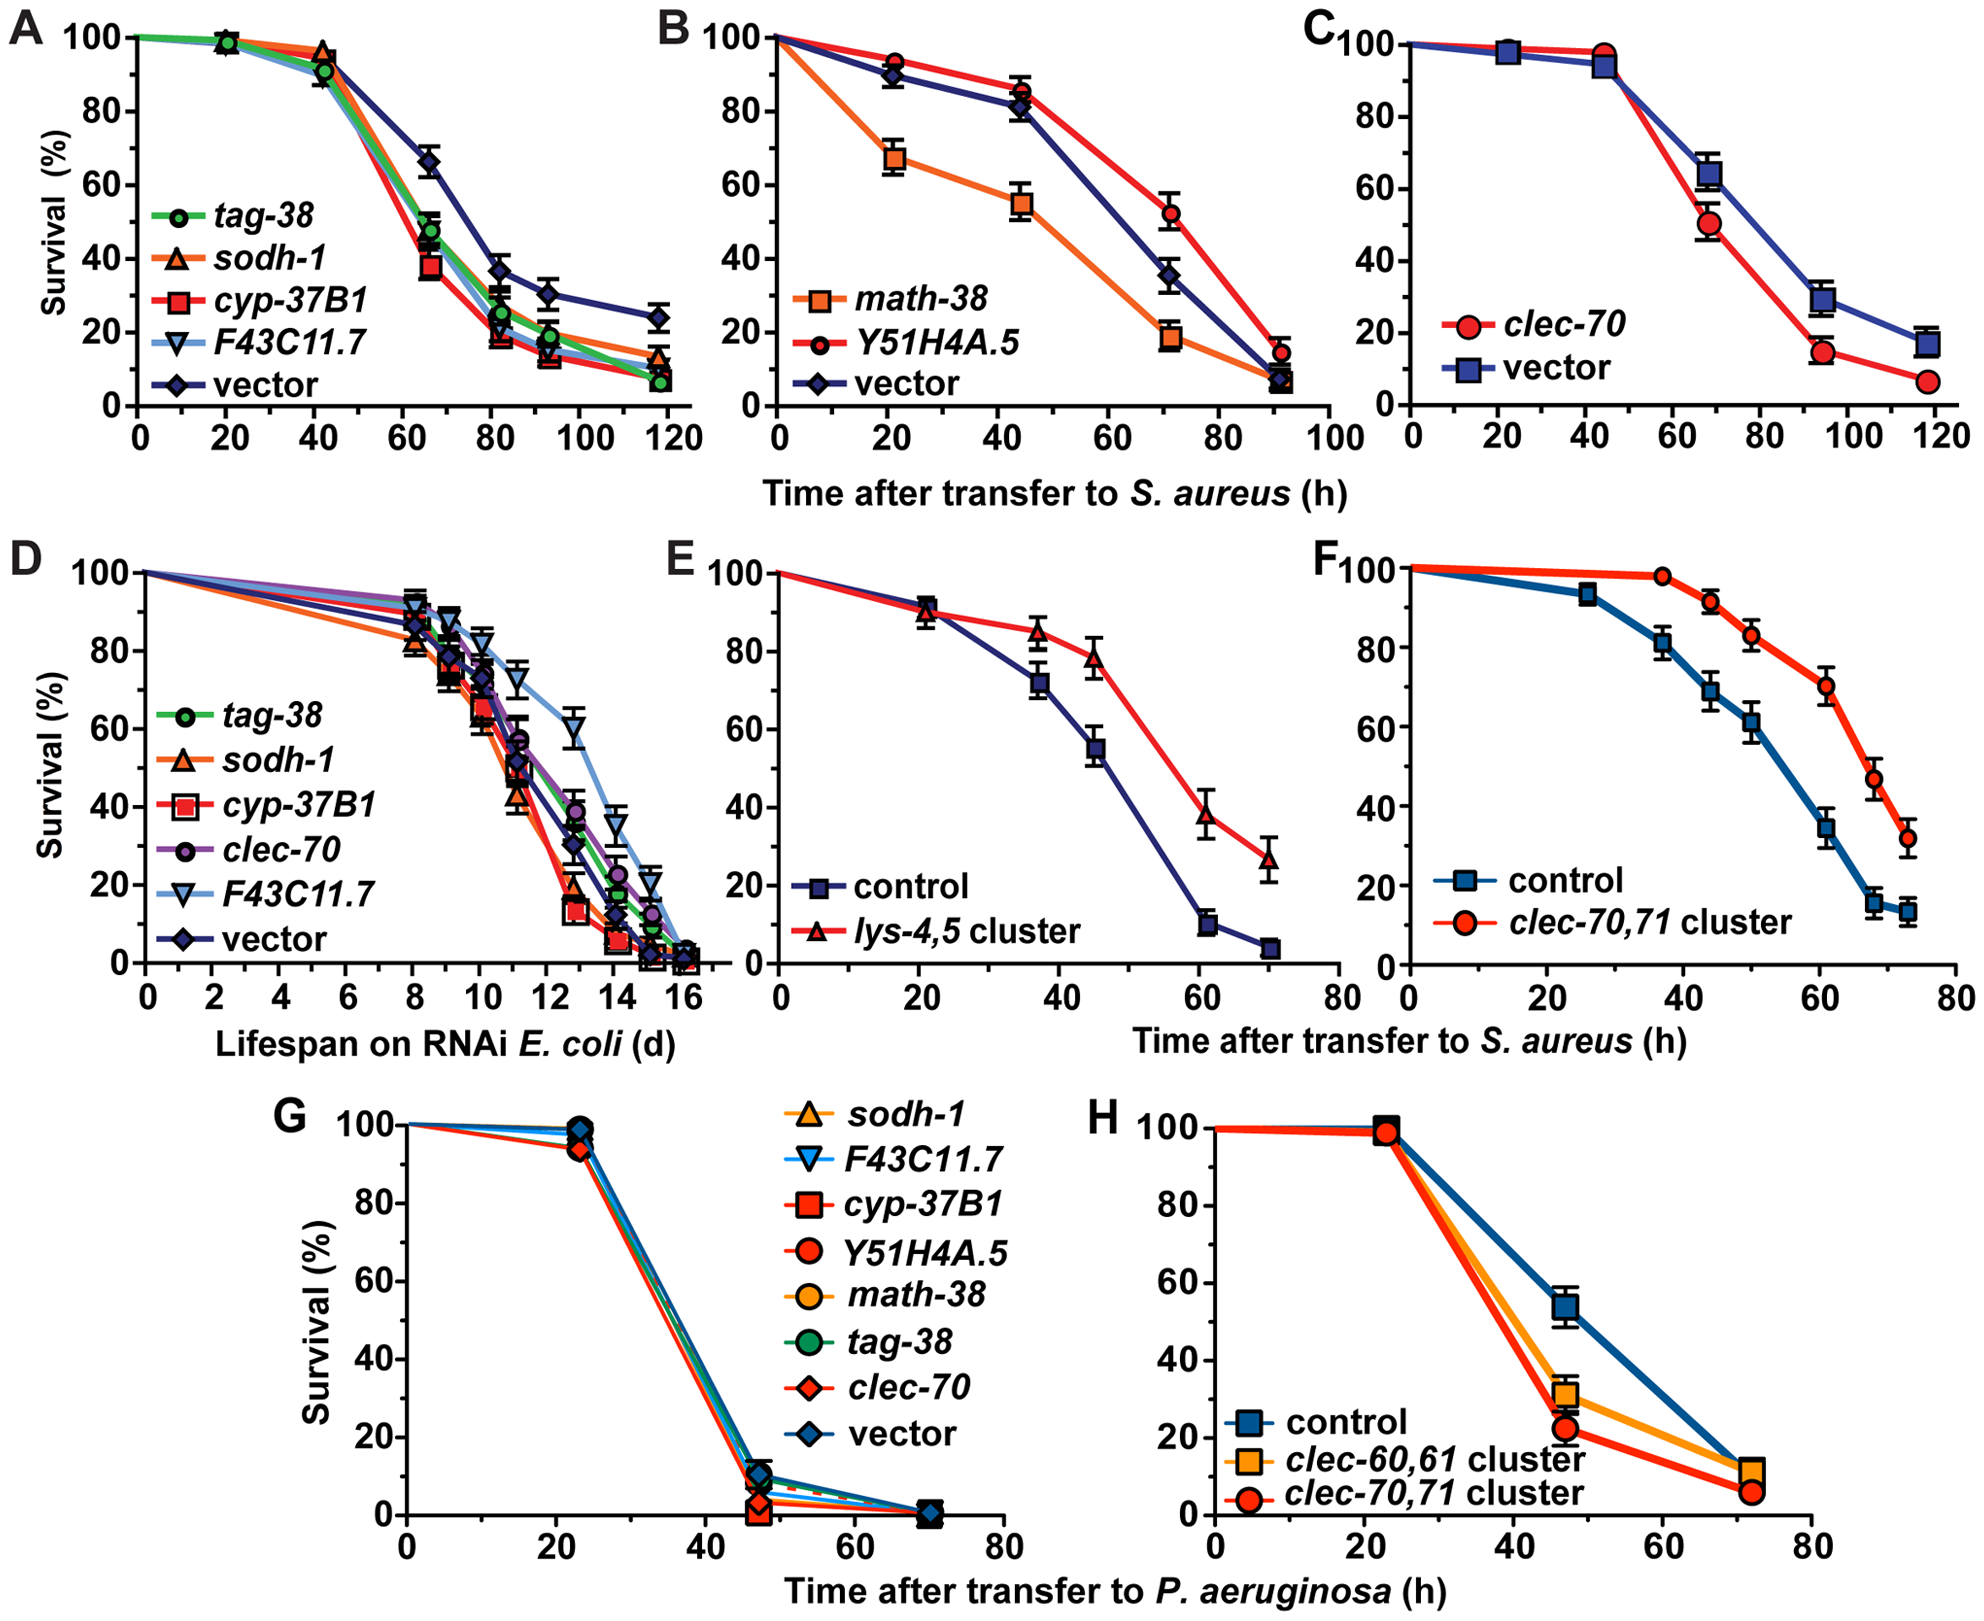 Host response genes are biologically relevant to host survival during <i>S. aureus</i> infection.